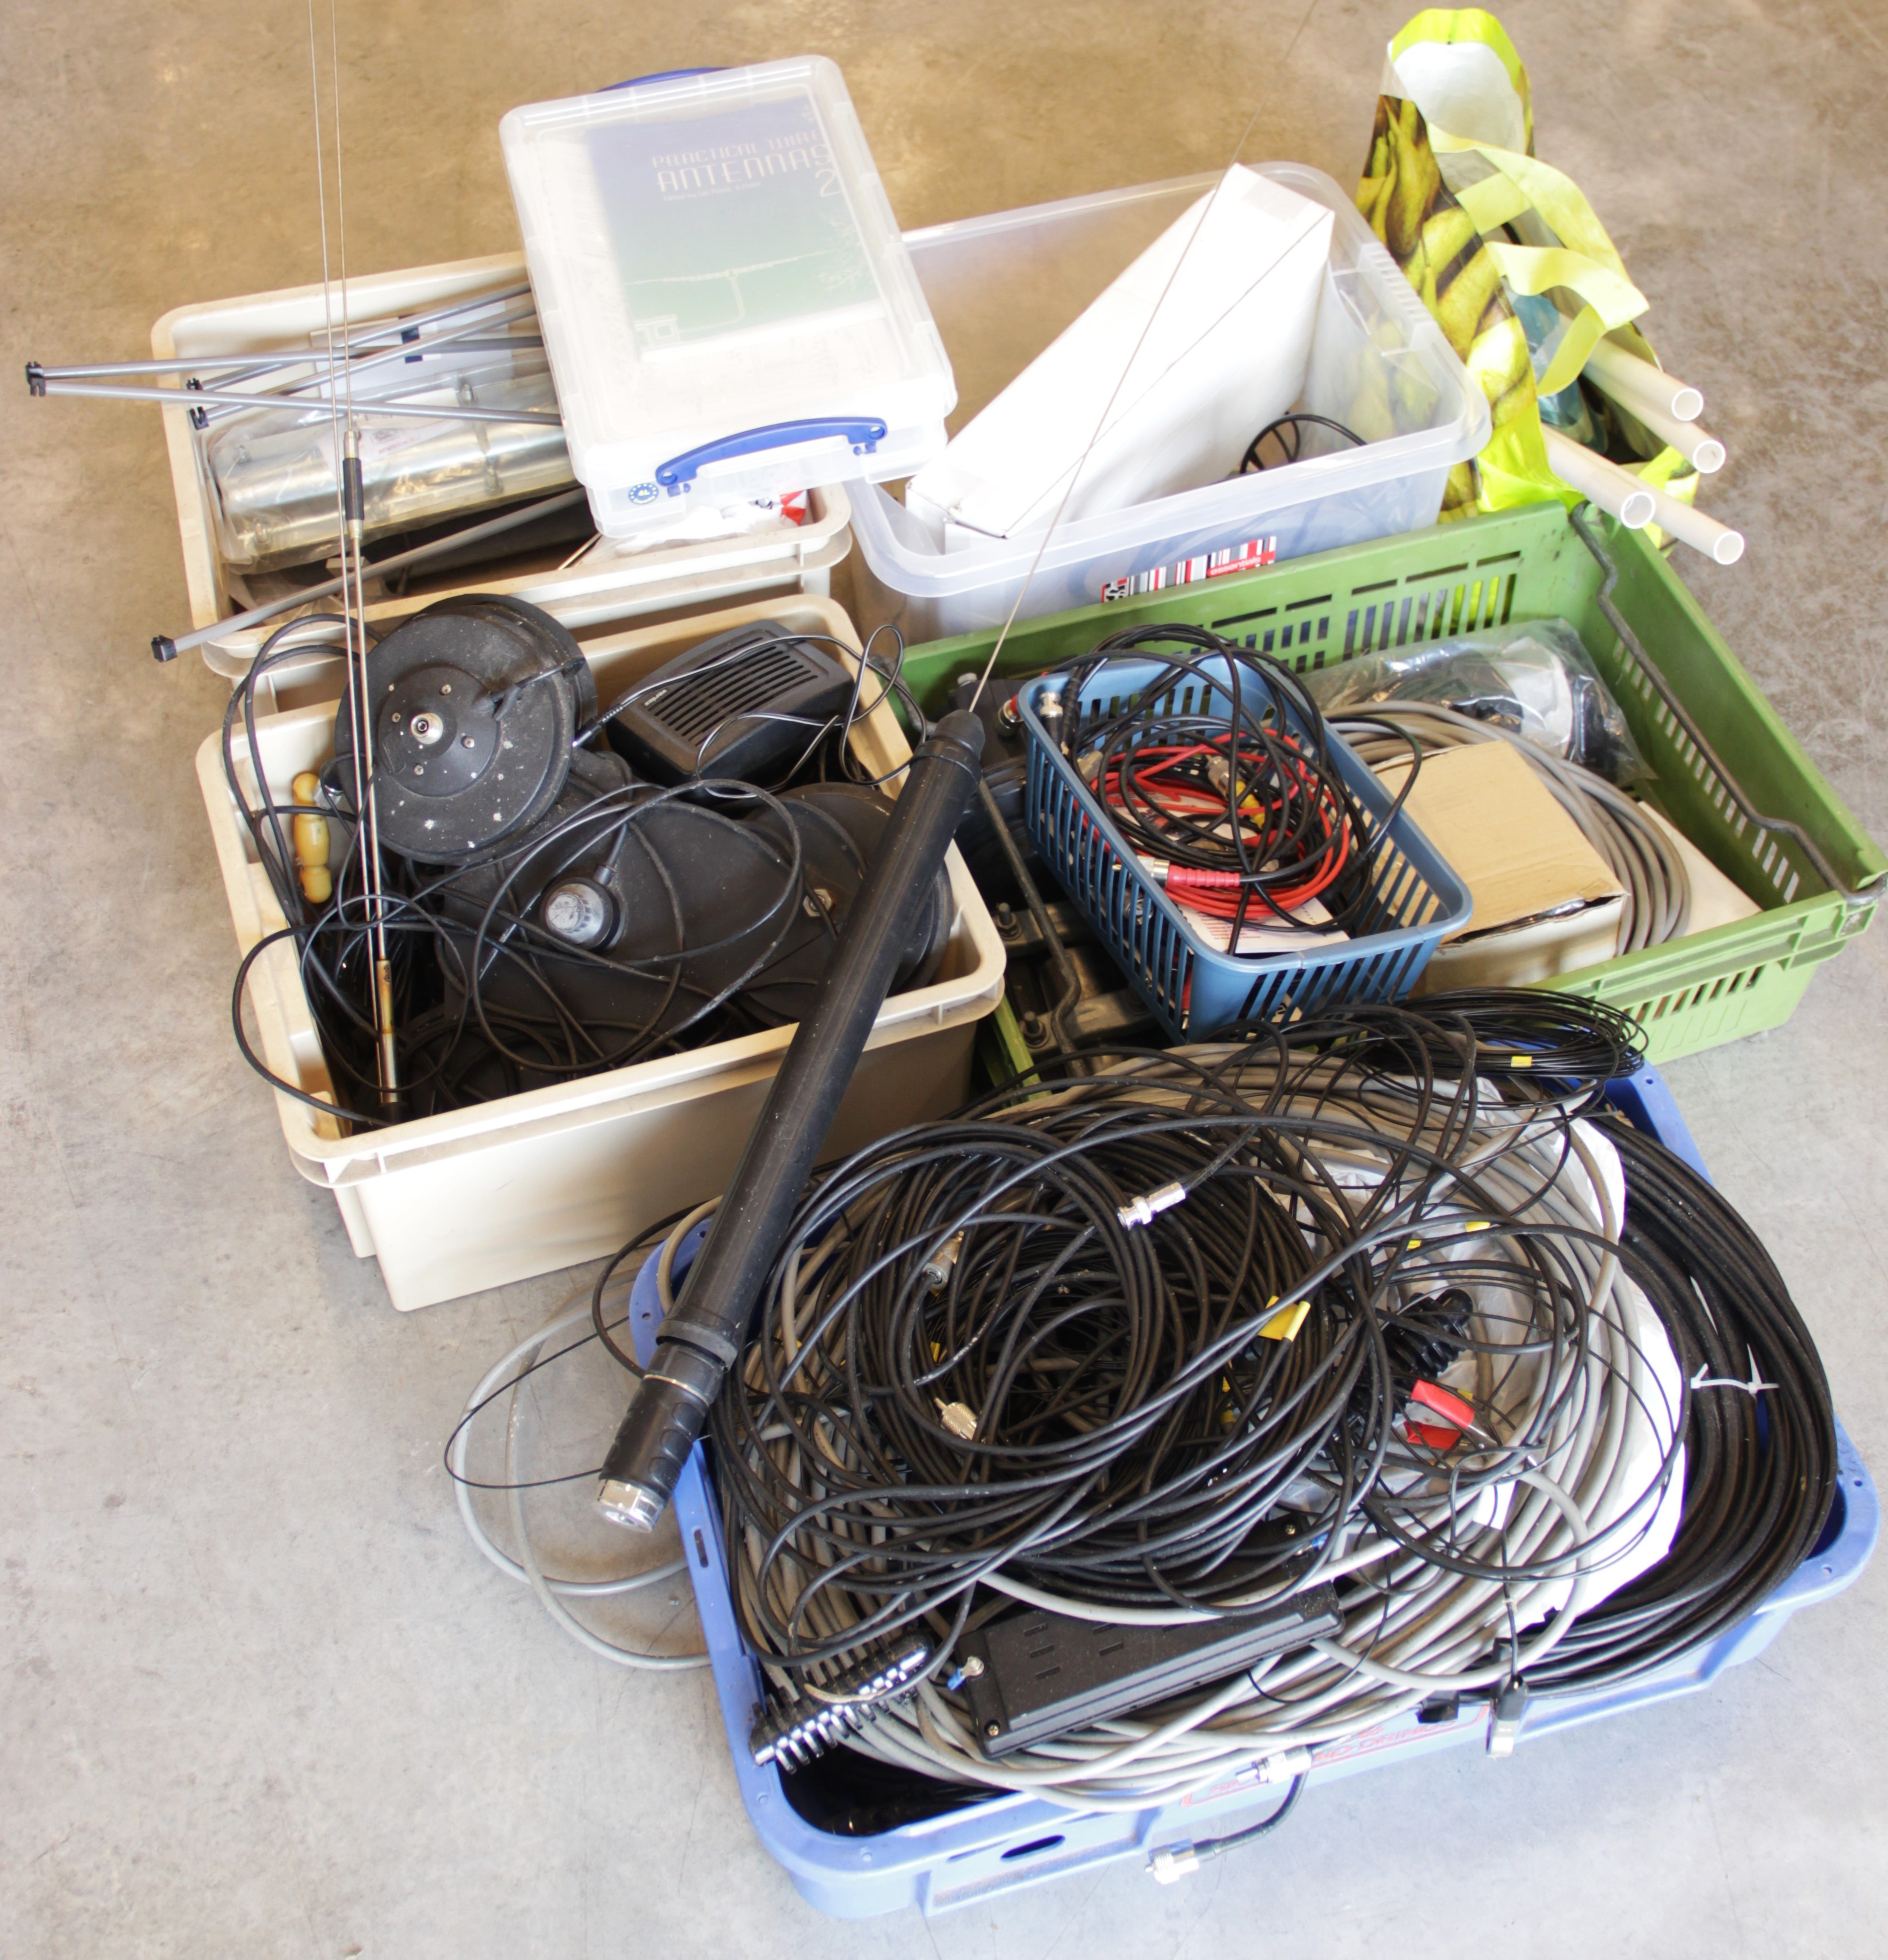 A collection of amateur 'ham' radio equipment, comprising: a Yaesu FTDX 3000 transceiver, an ATU 897 - Image 4 of 13